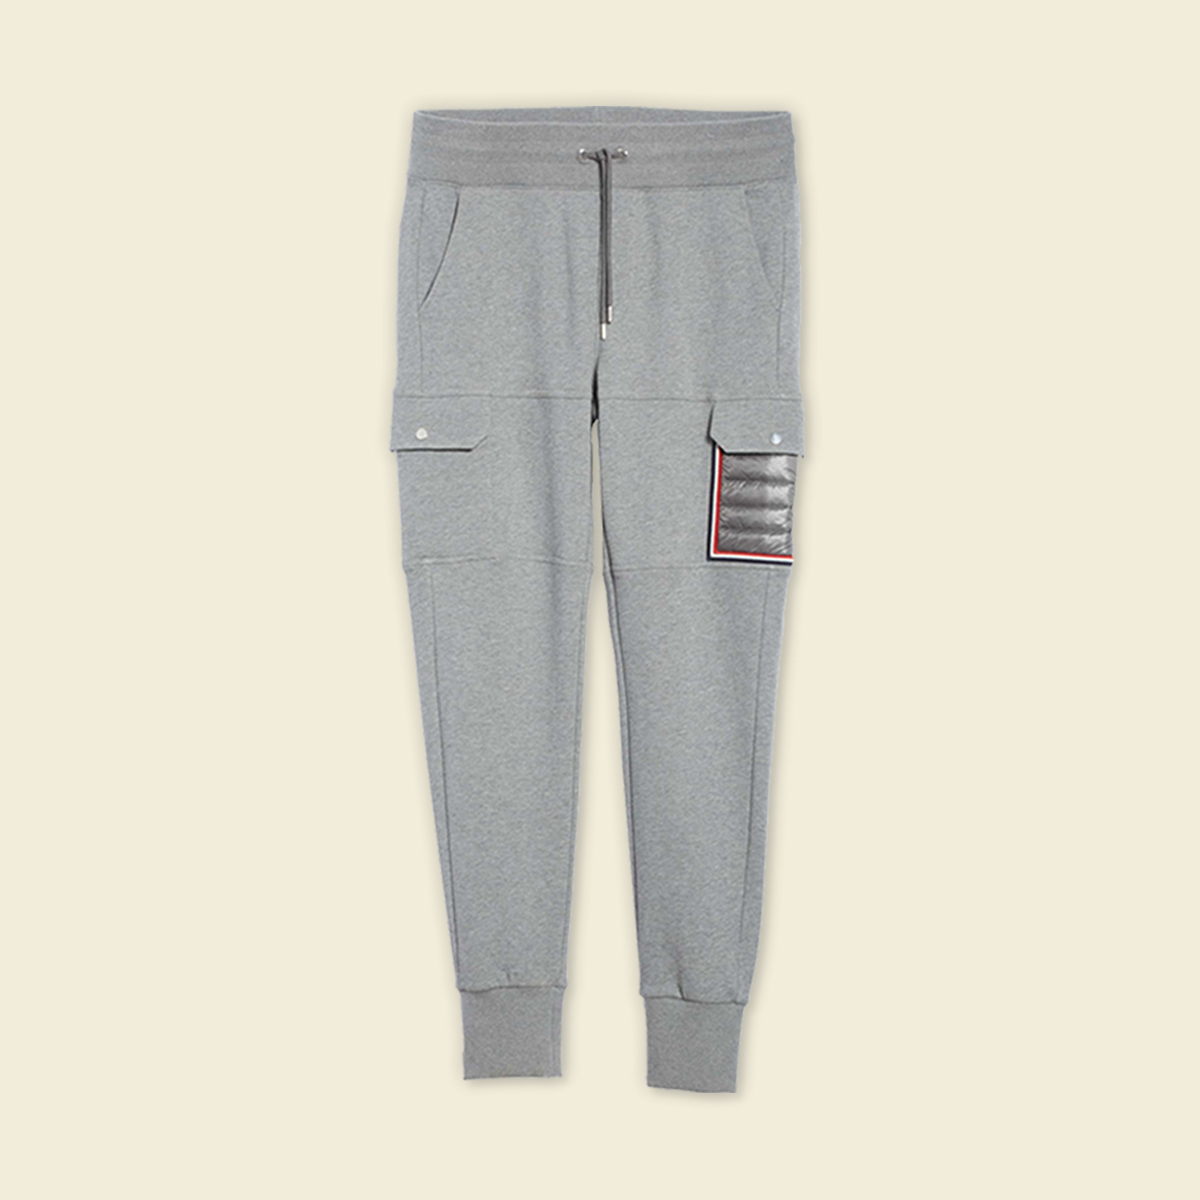 Grey sweatpants.